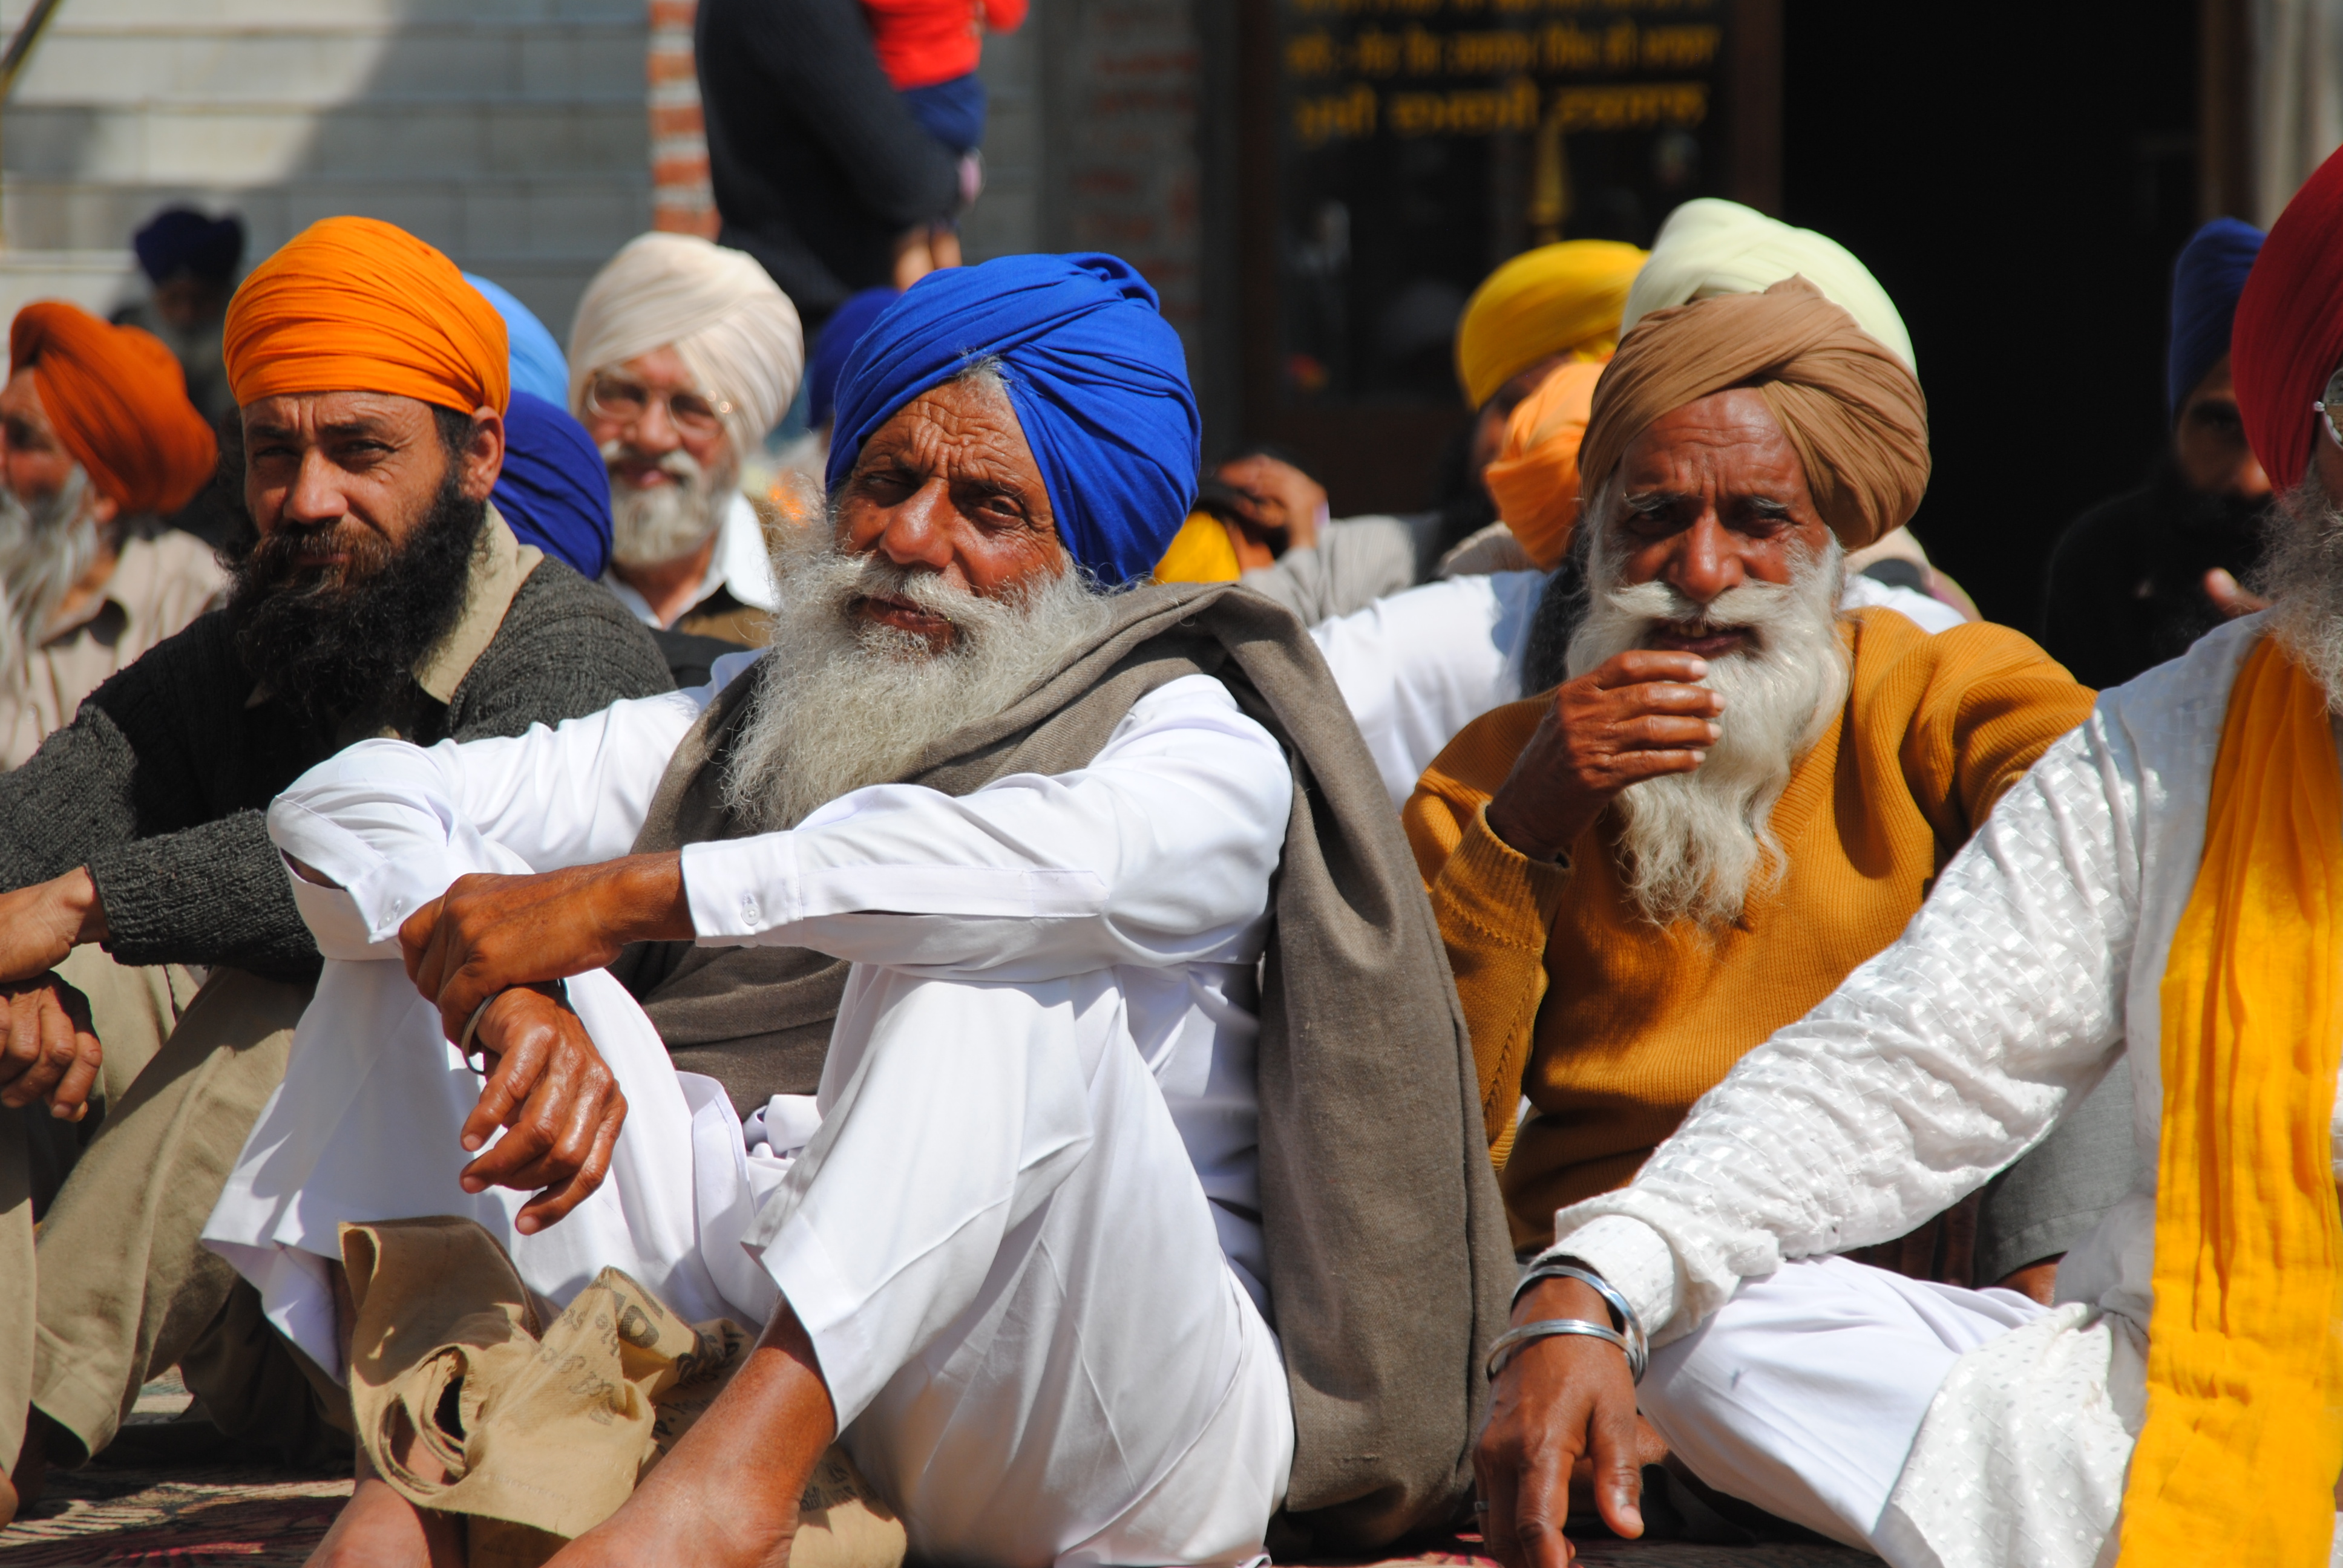 The Langar kitchens of the Sikhs | Special Information